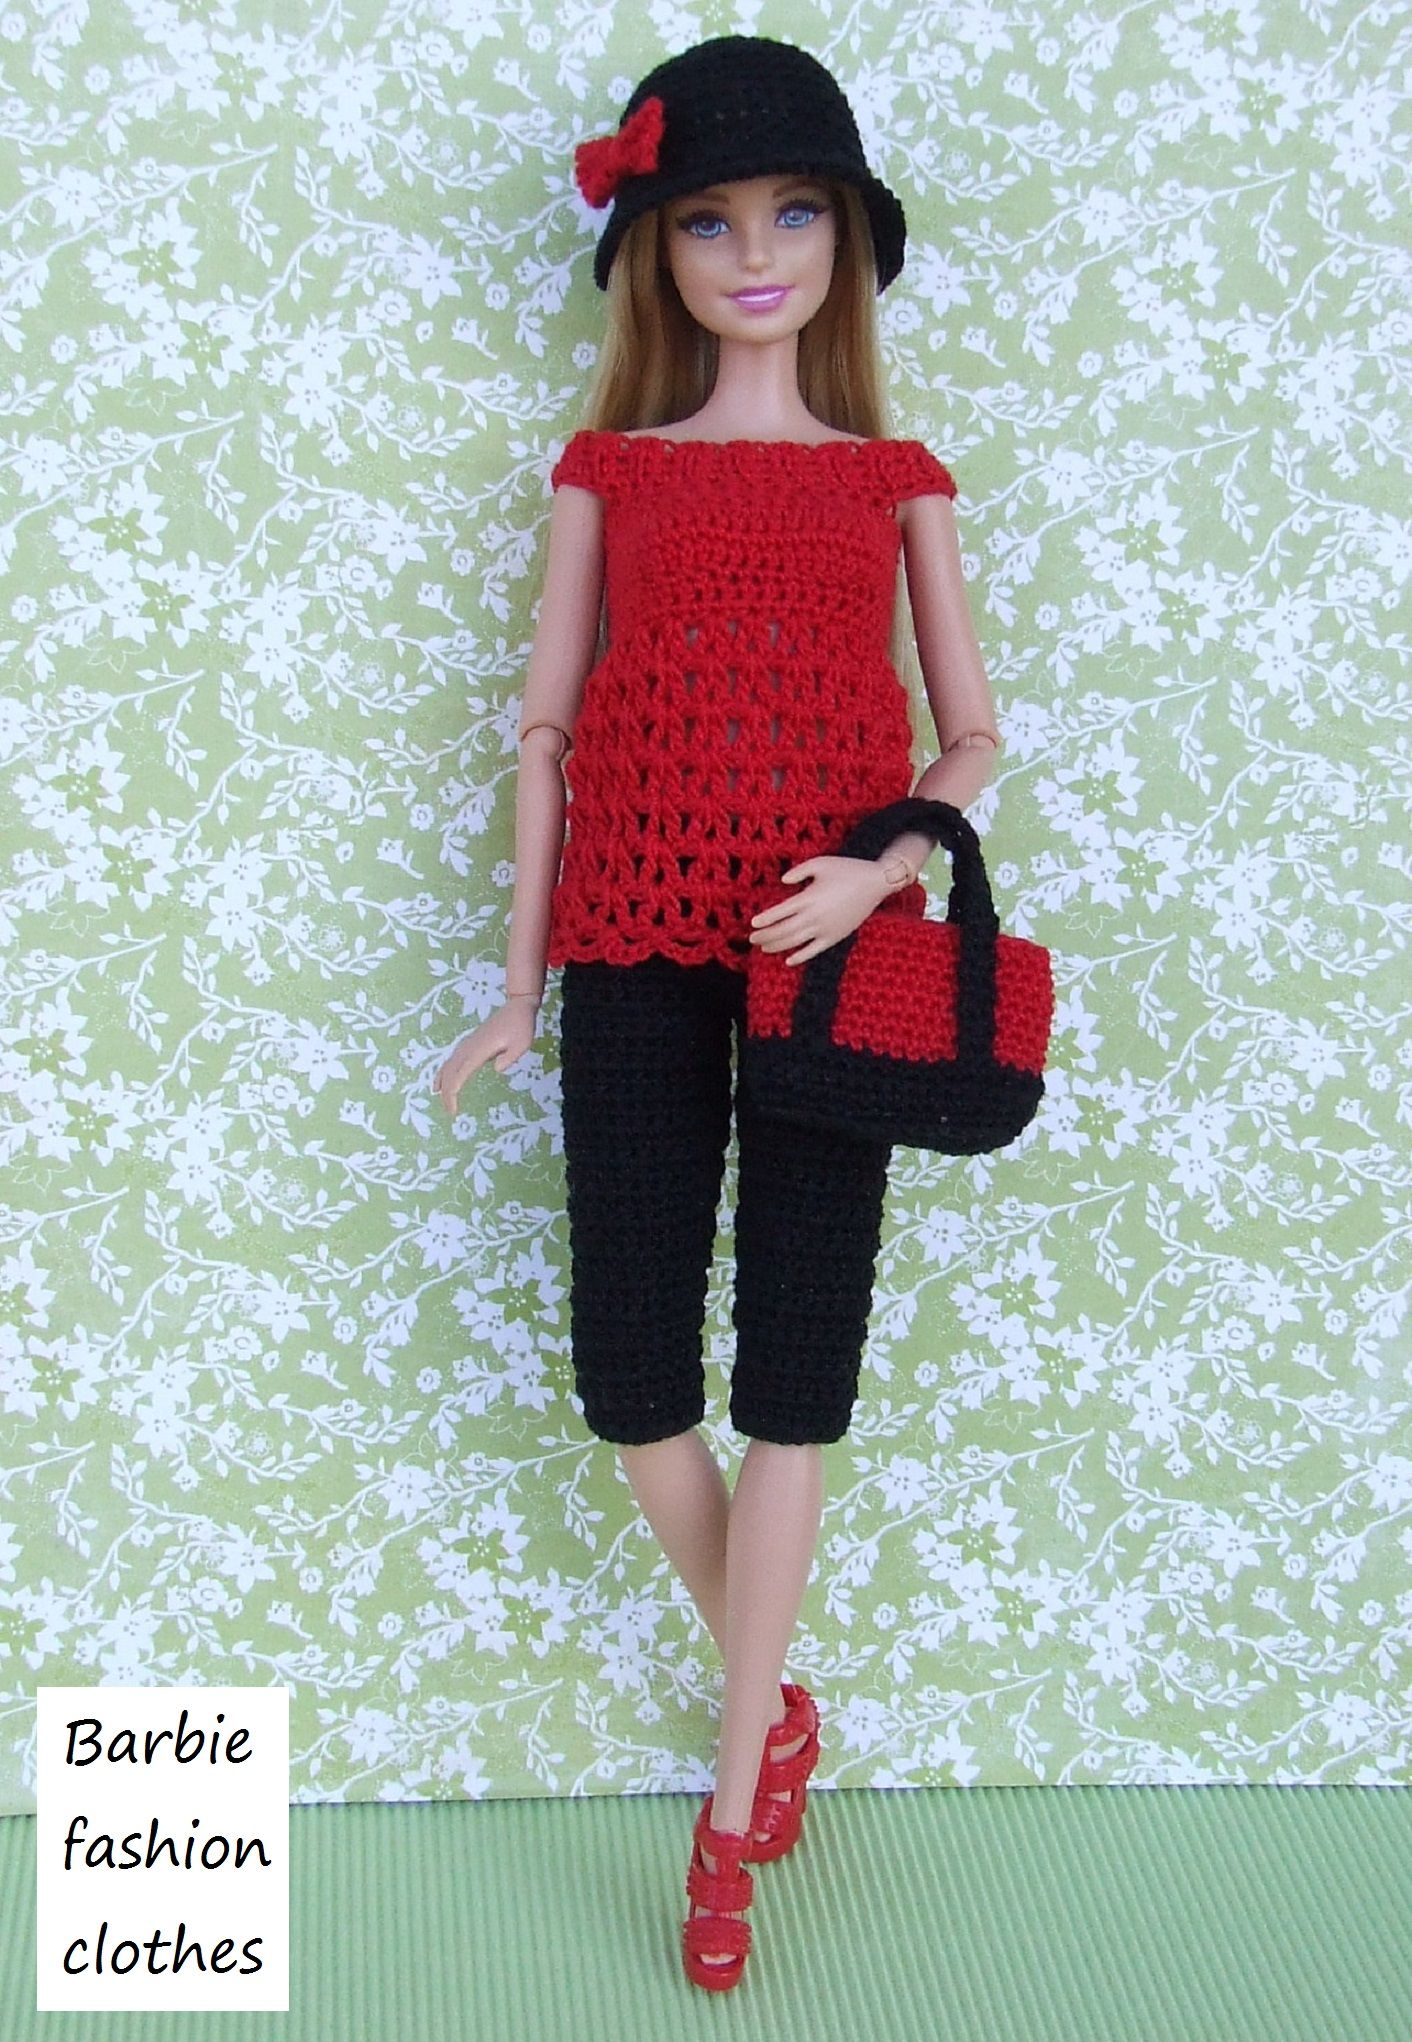 Pin by anel lombard on barbie fashion clothes pinterest barbie crochet fashion miniature dolls fashion dolls fashion clothes doll stuff barbie stuff doll patterns barbie clothes patterns barbie doll bankloansurffo Image collections